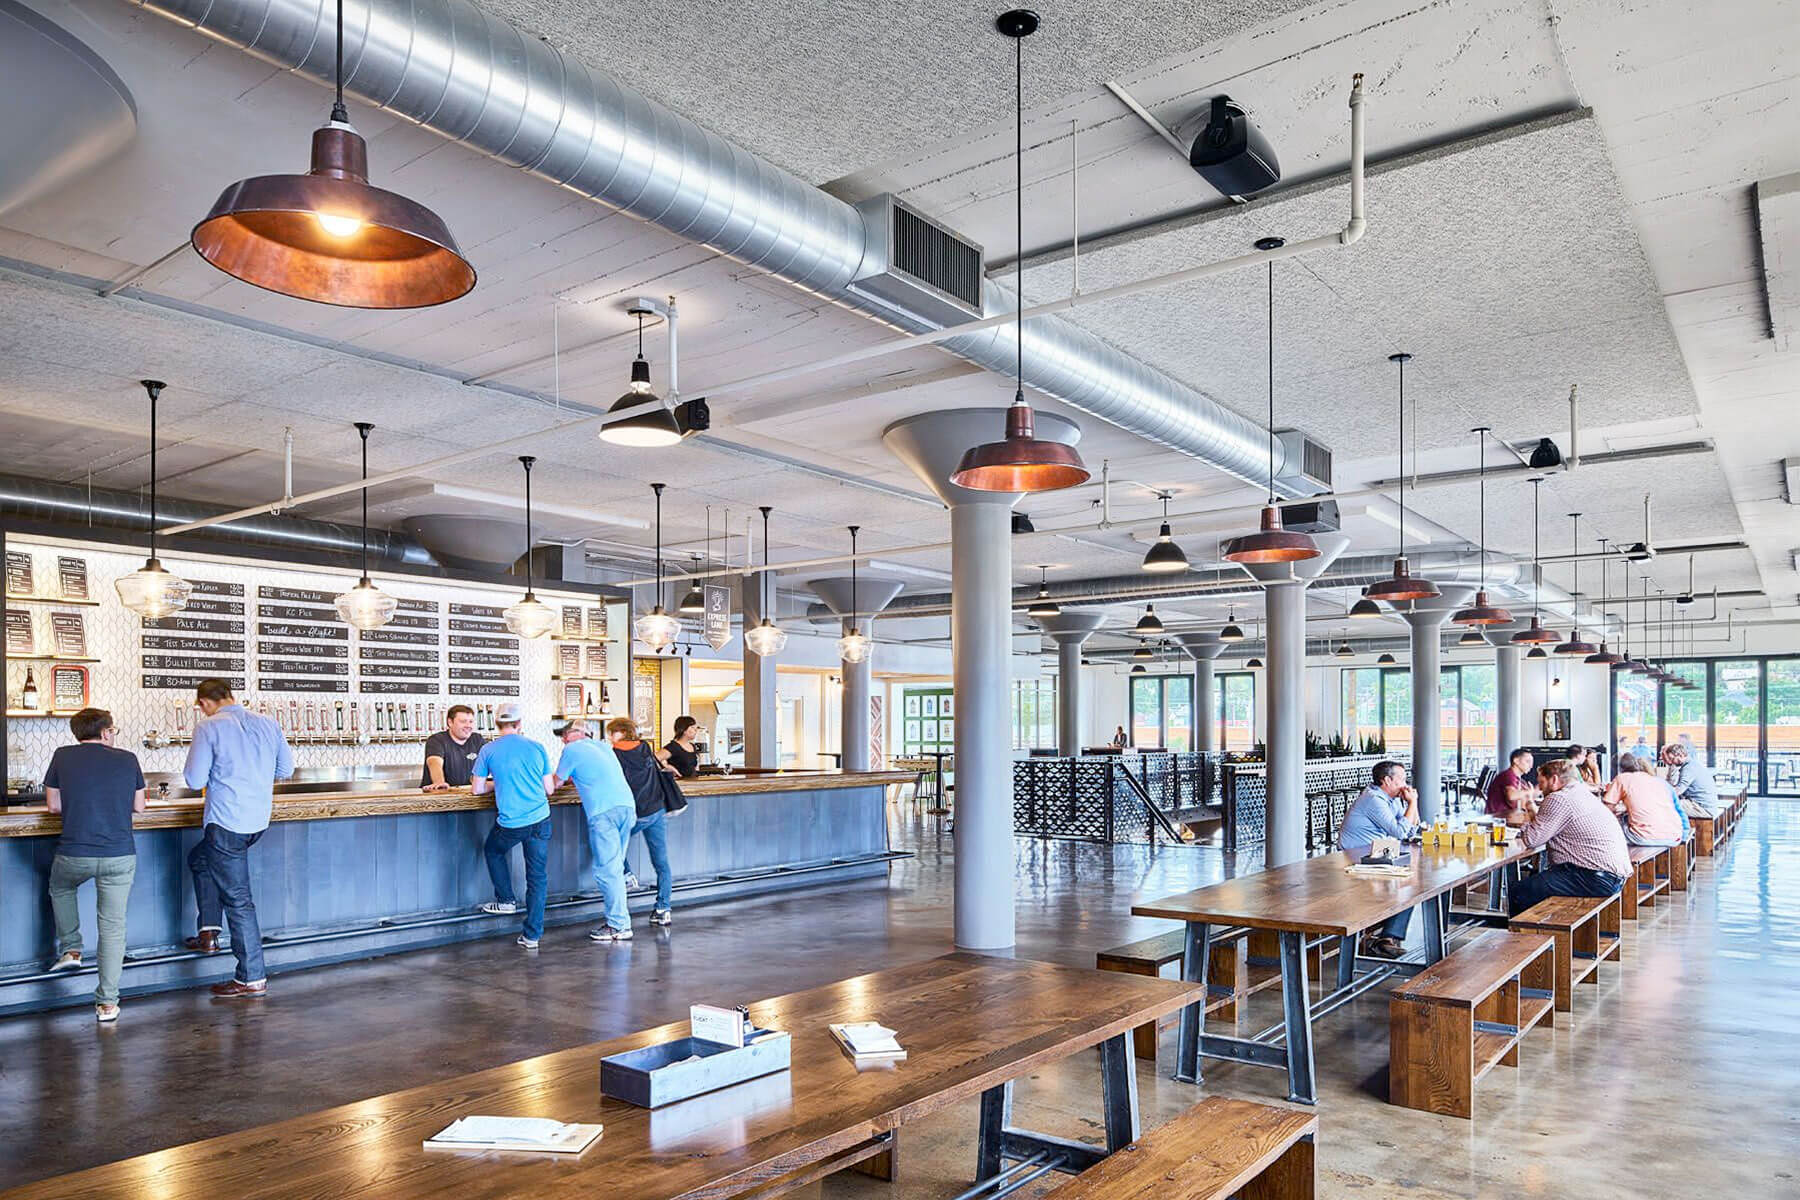 Inside the taproom at Boulevard Brewing Co. in Kansas City, Missouri